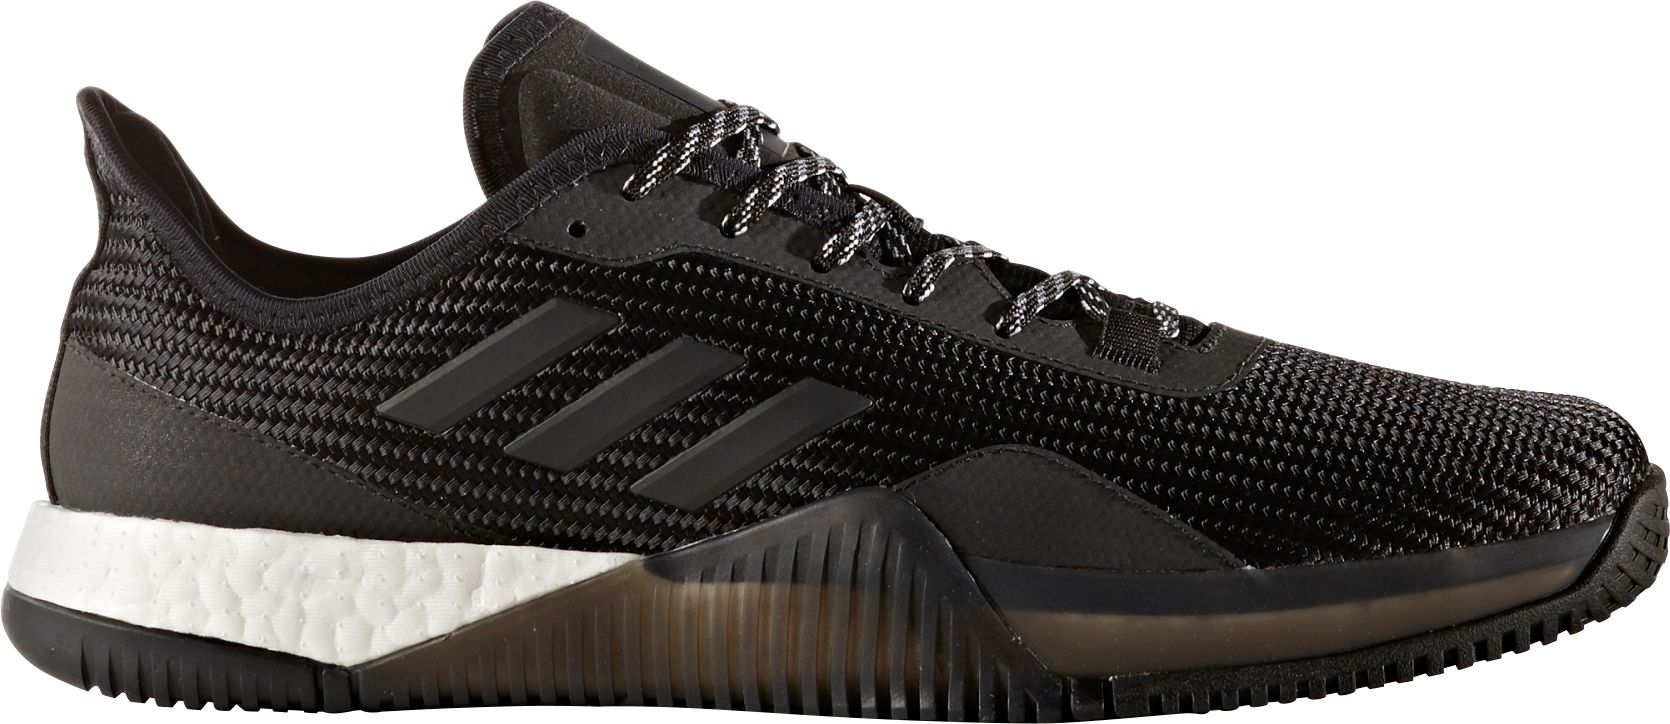 Mens Crazytrain Elite Fitness Shoes adidas pPd84yZqW